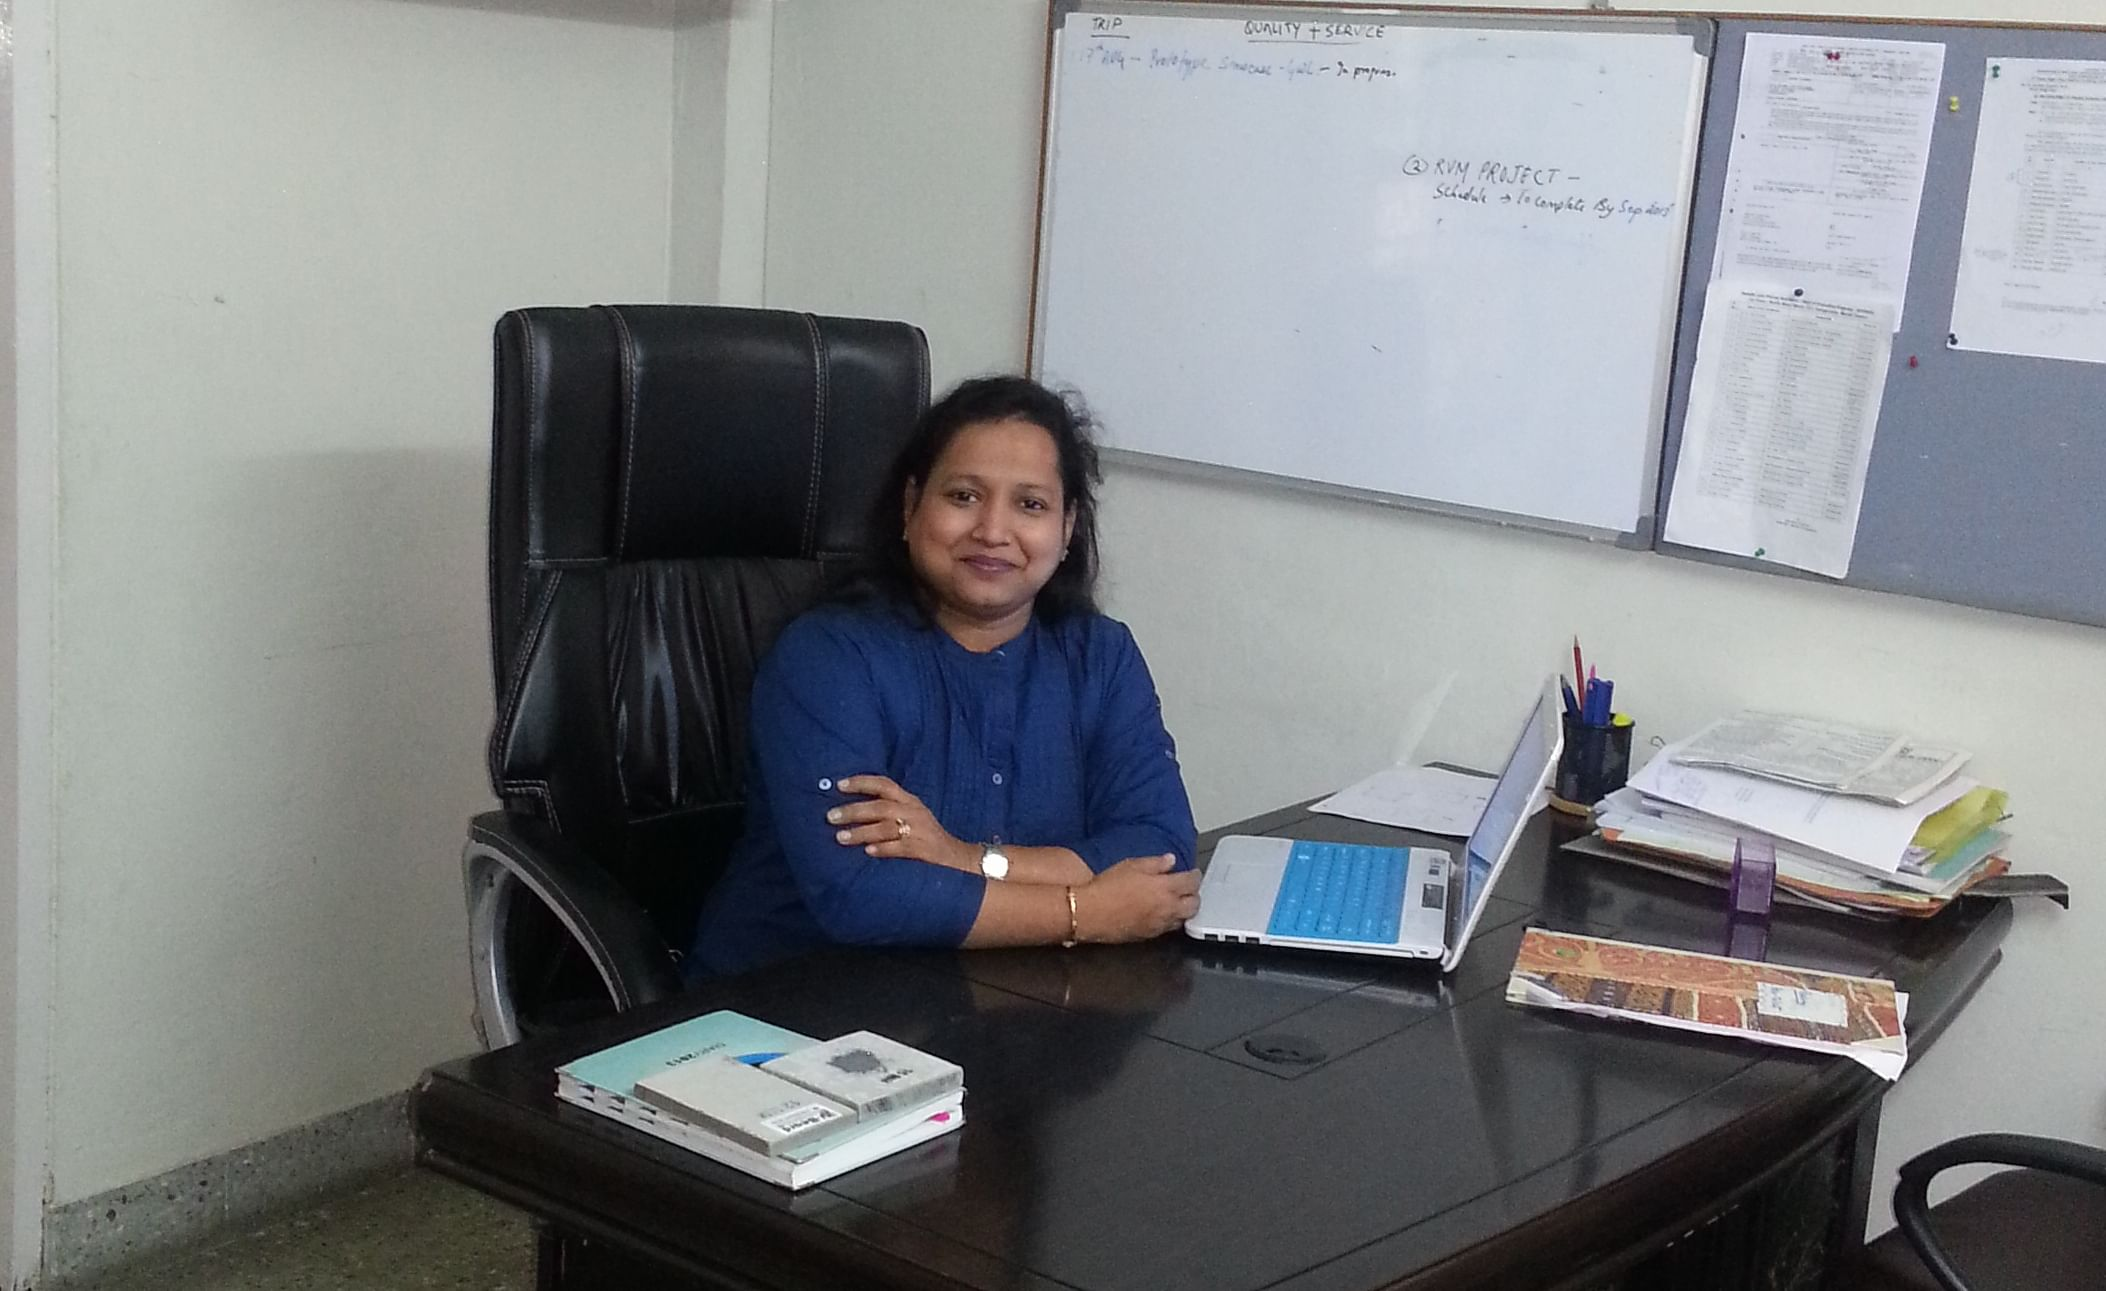 Namita Banka, founder of Banka Bioloo